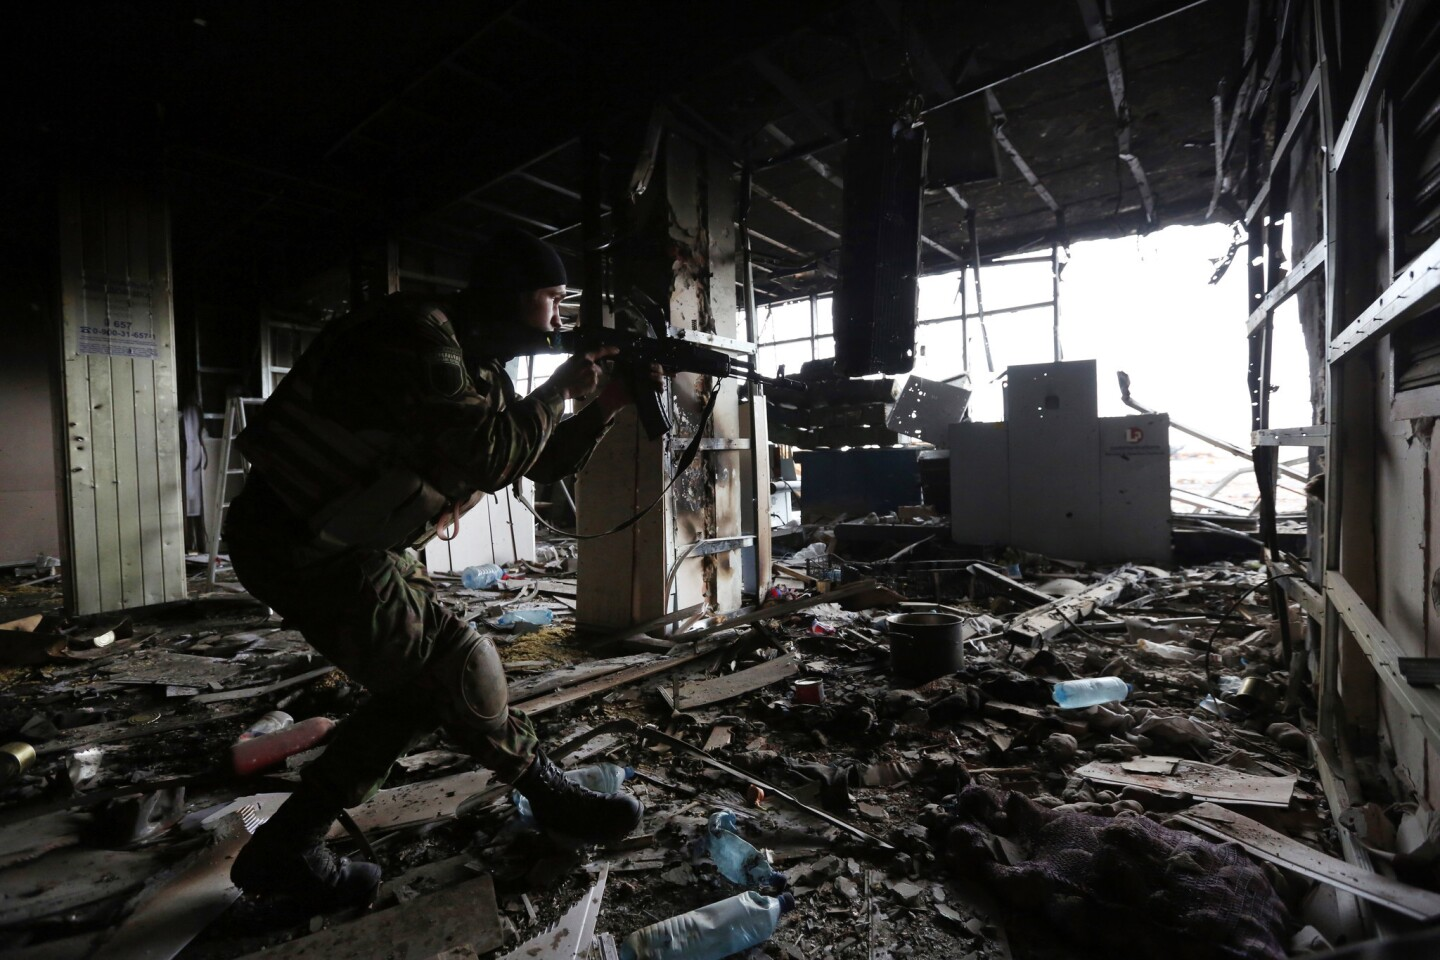 A Ukrainian soldier patrols inside the Donetsk airport. It has been the scene of fierce fighting between government troops and pro-Russia separatists since May.